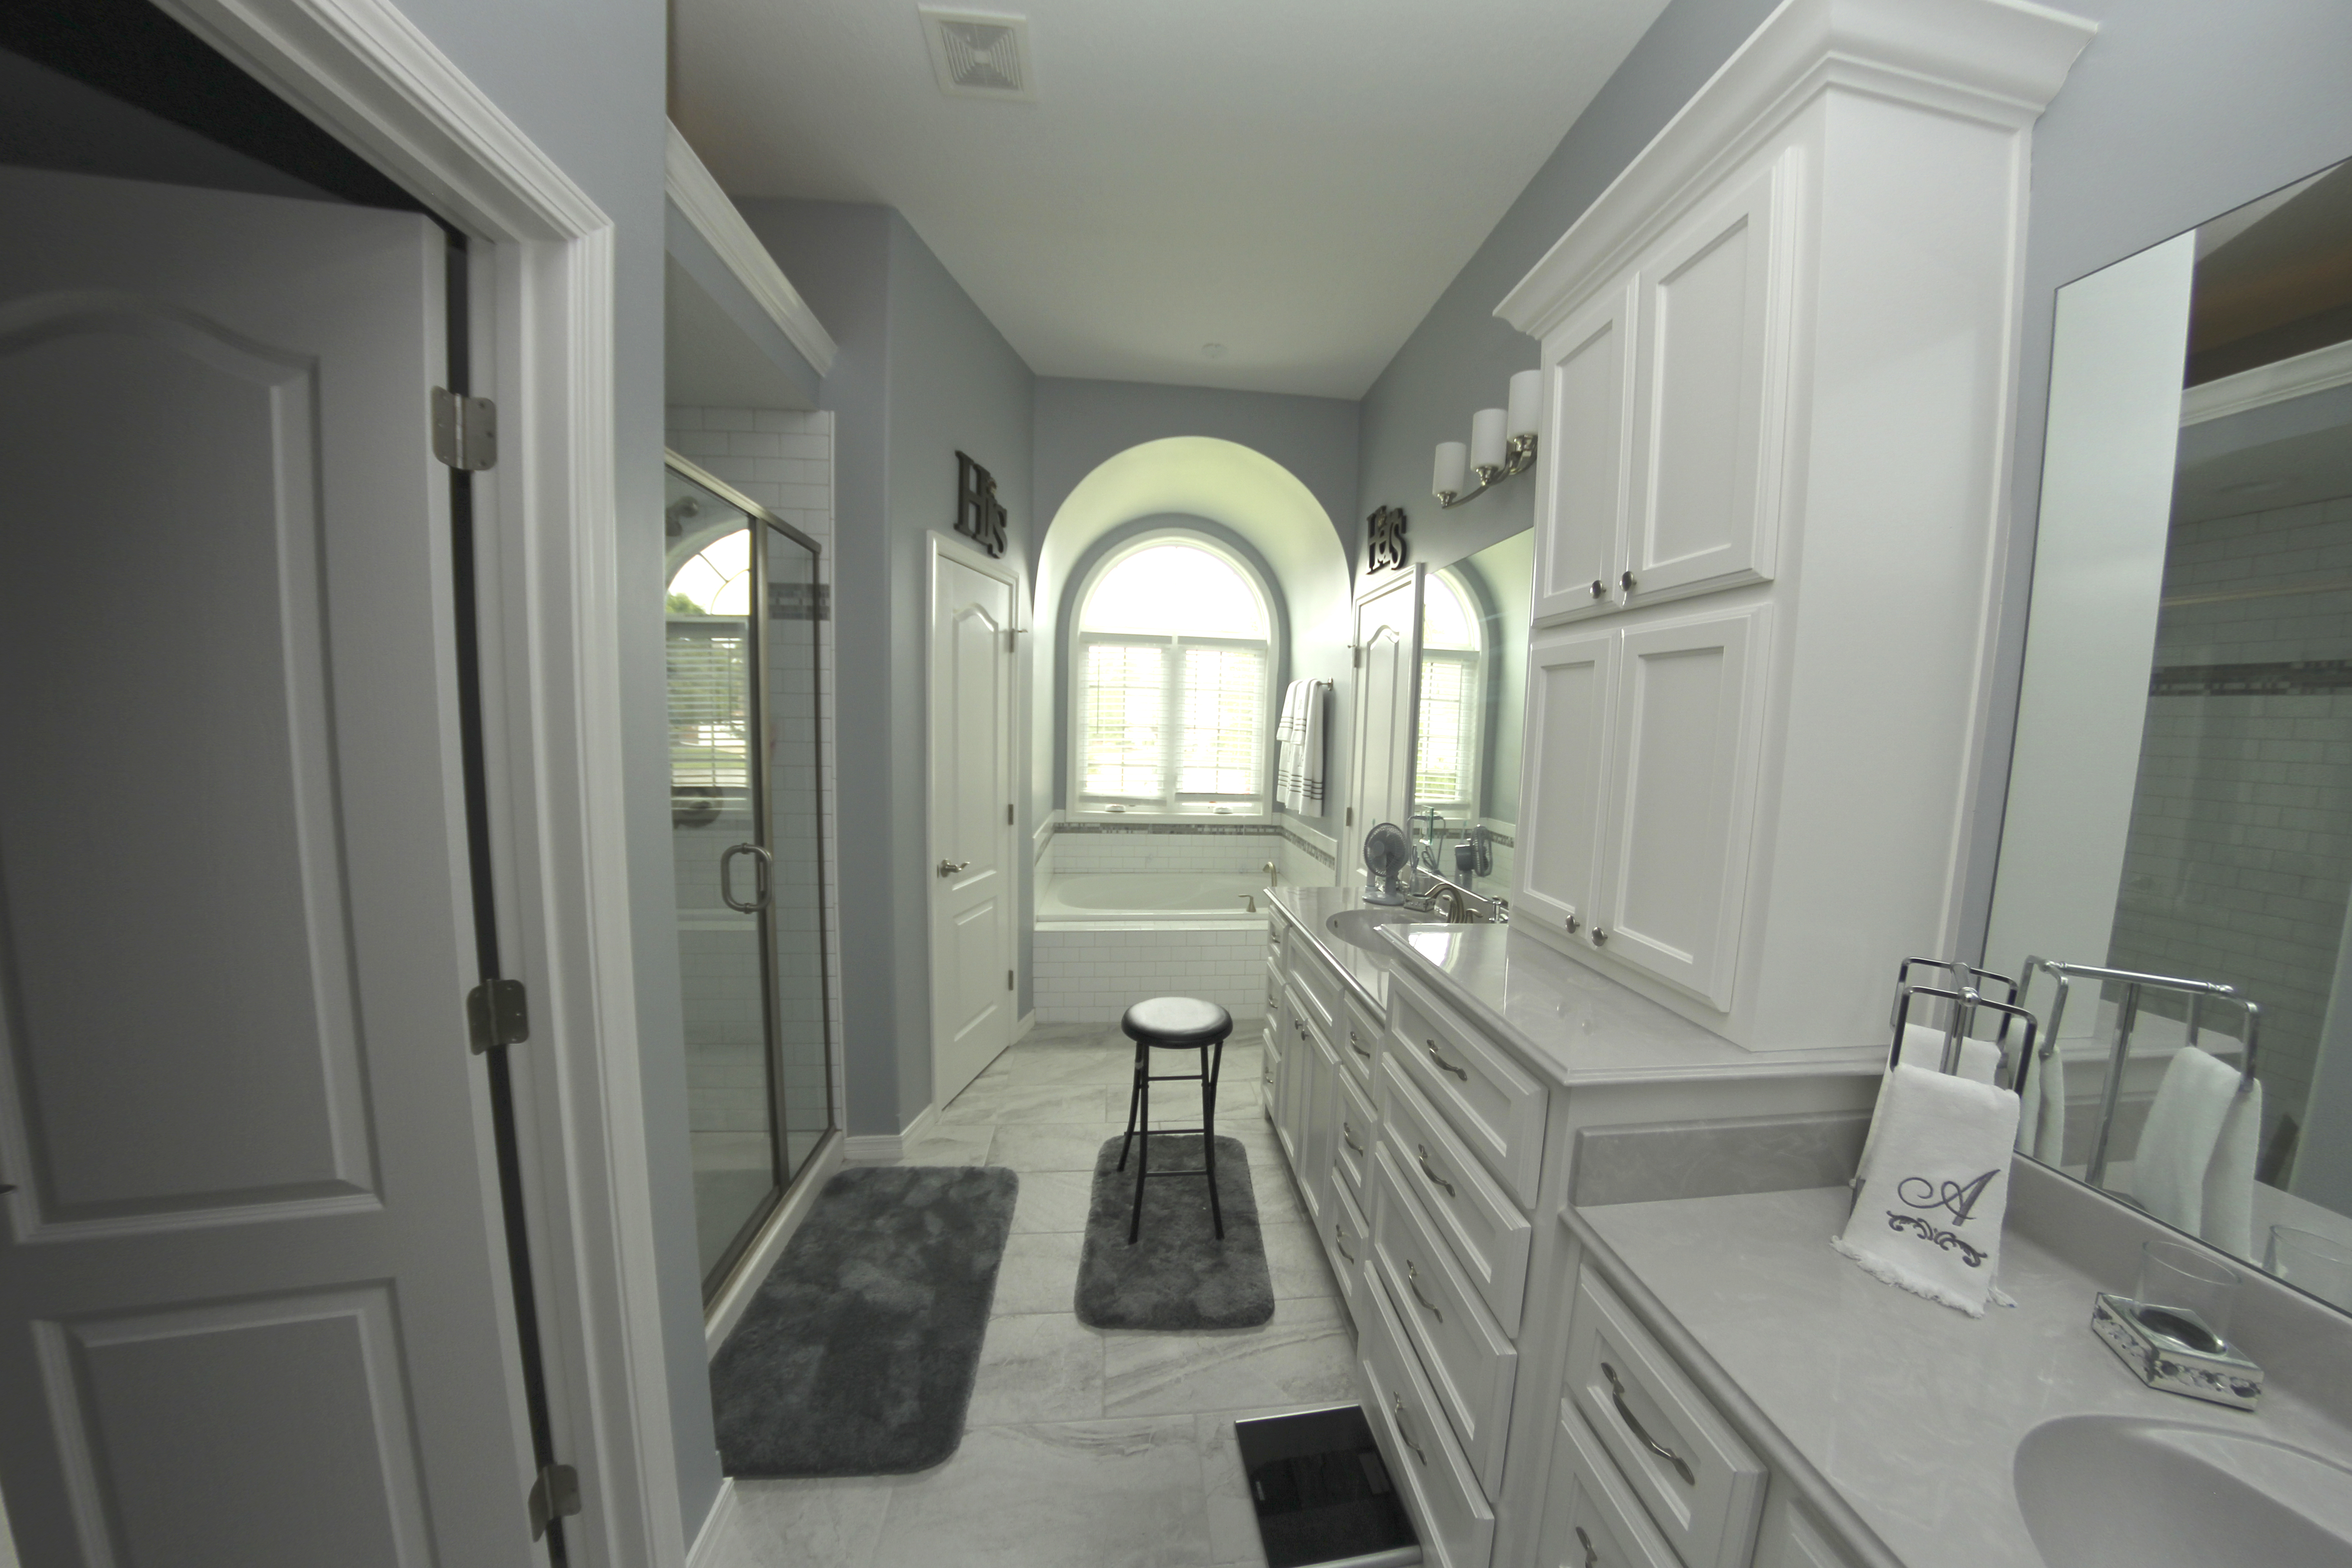 Kitchen, Bathroom, And Basement Remodeling Company